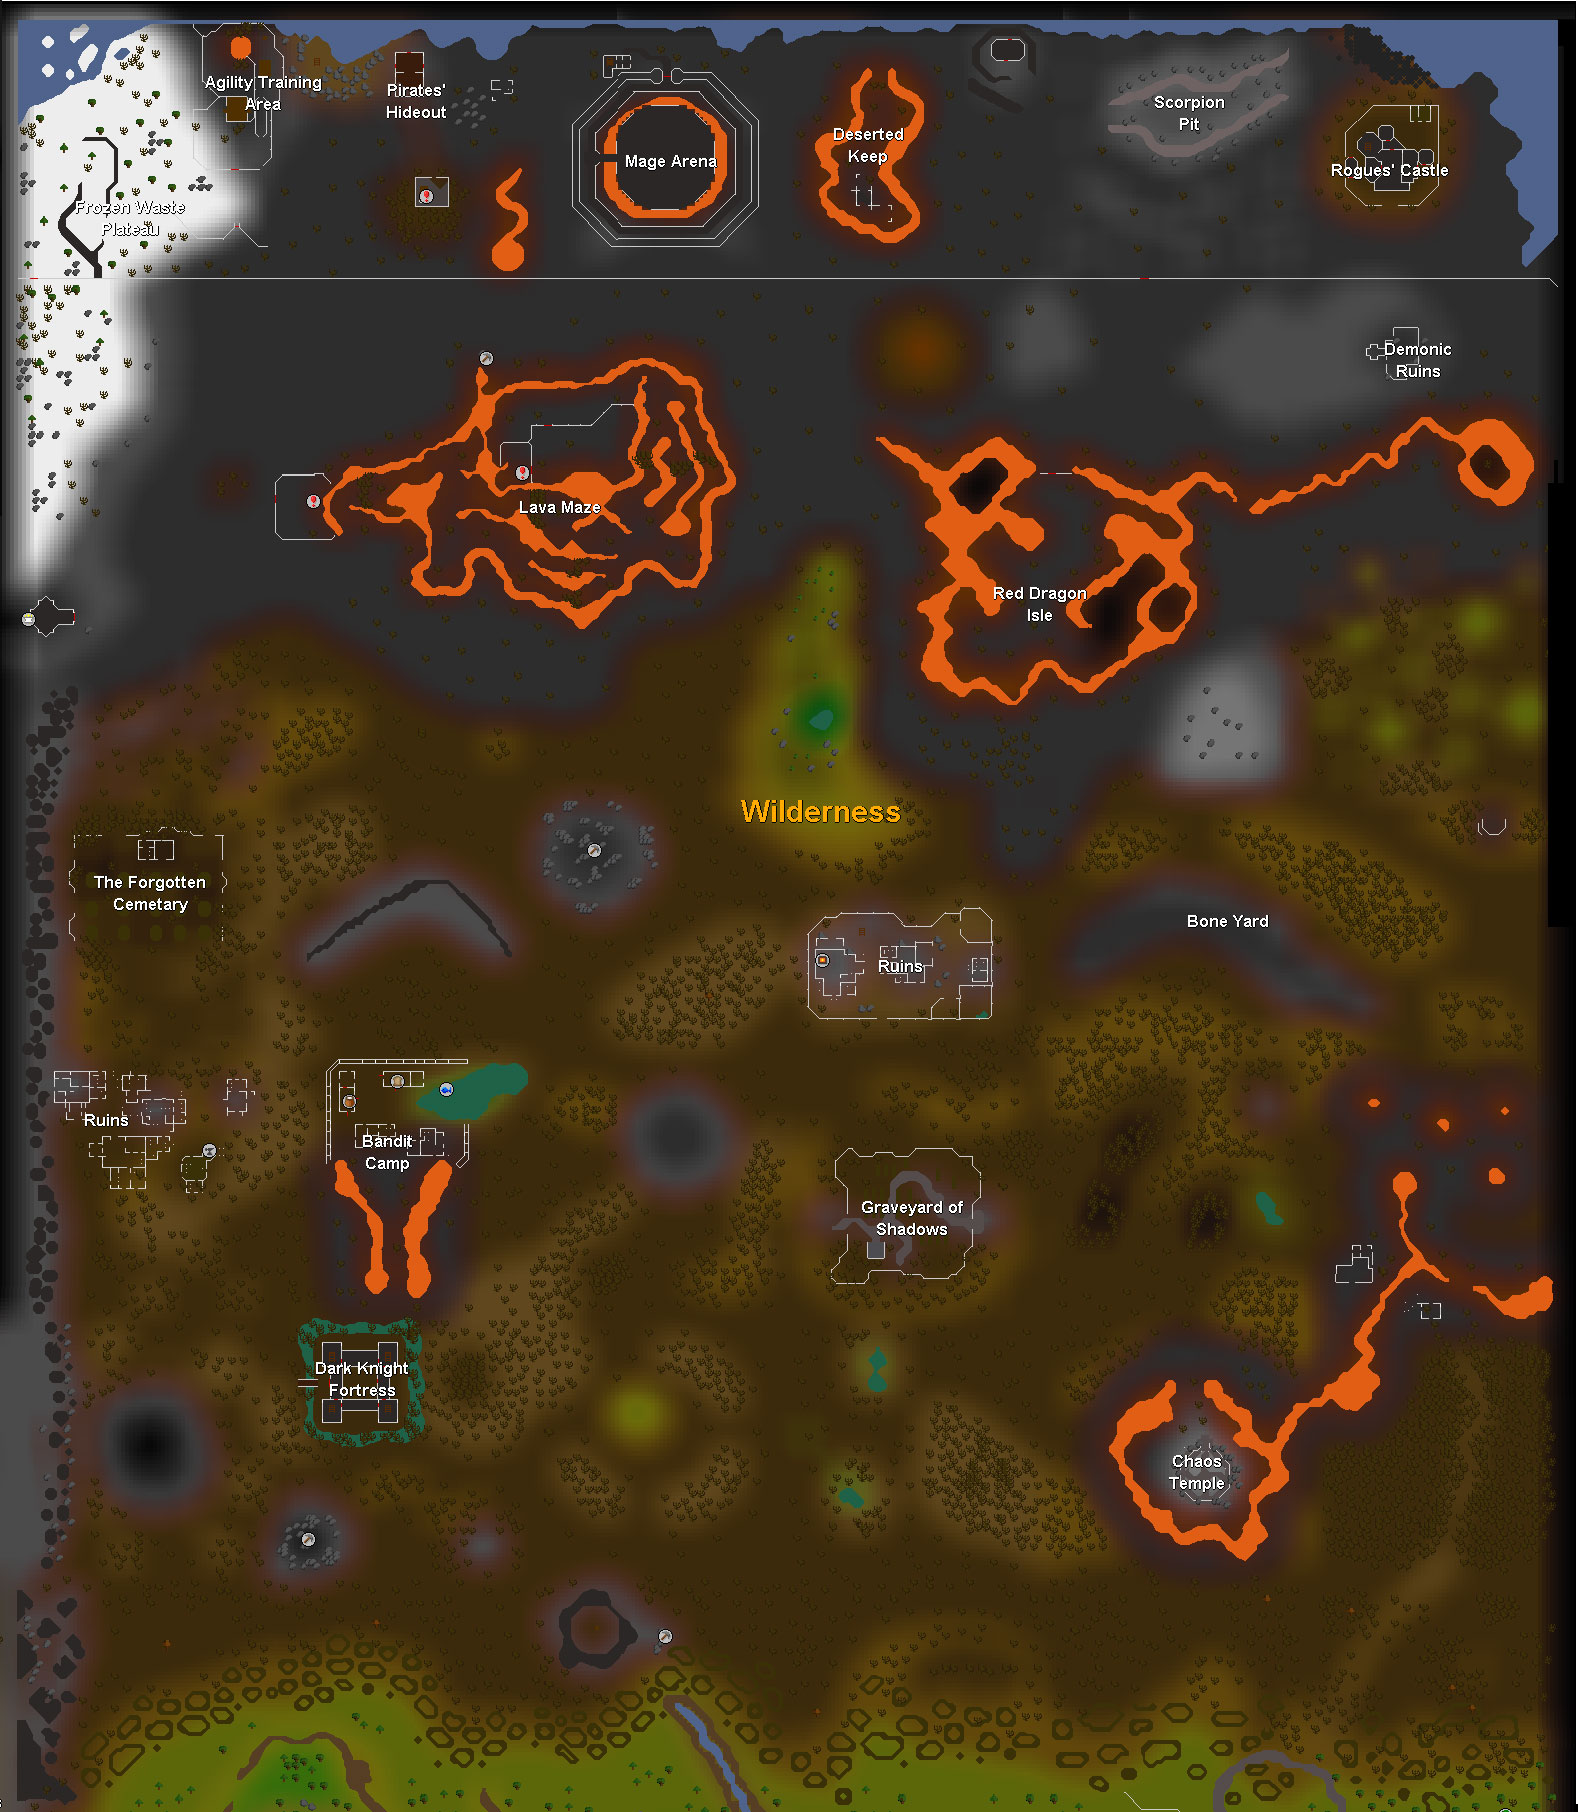 barrows brothers wilderness map